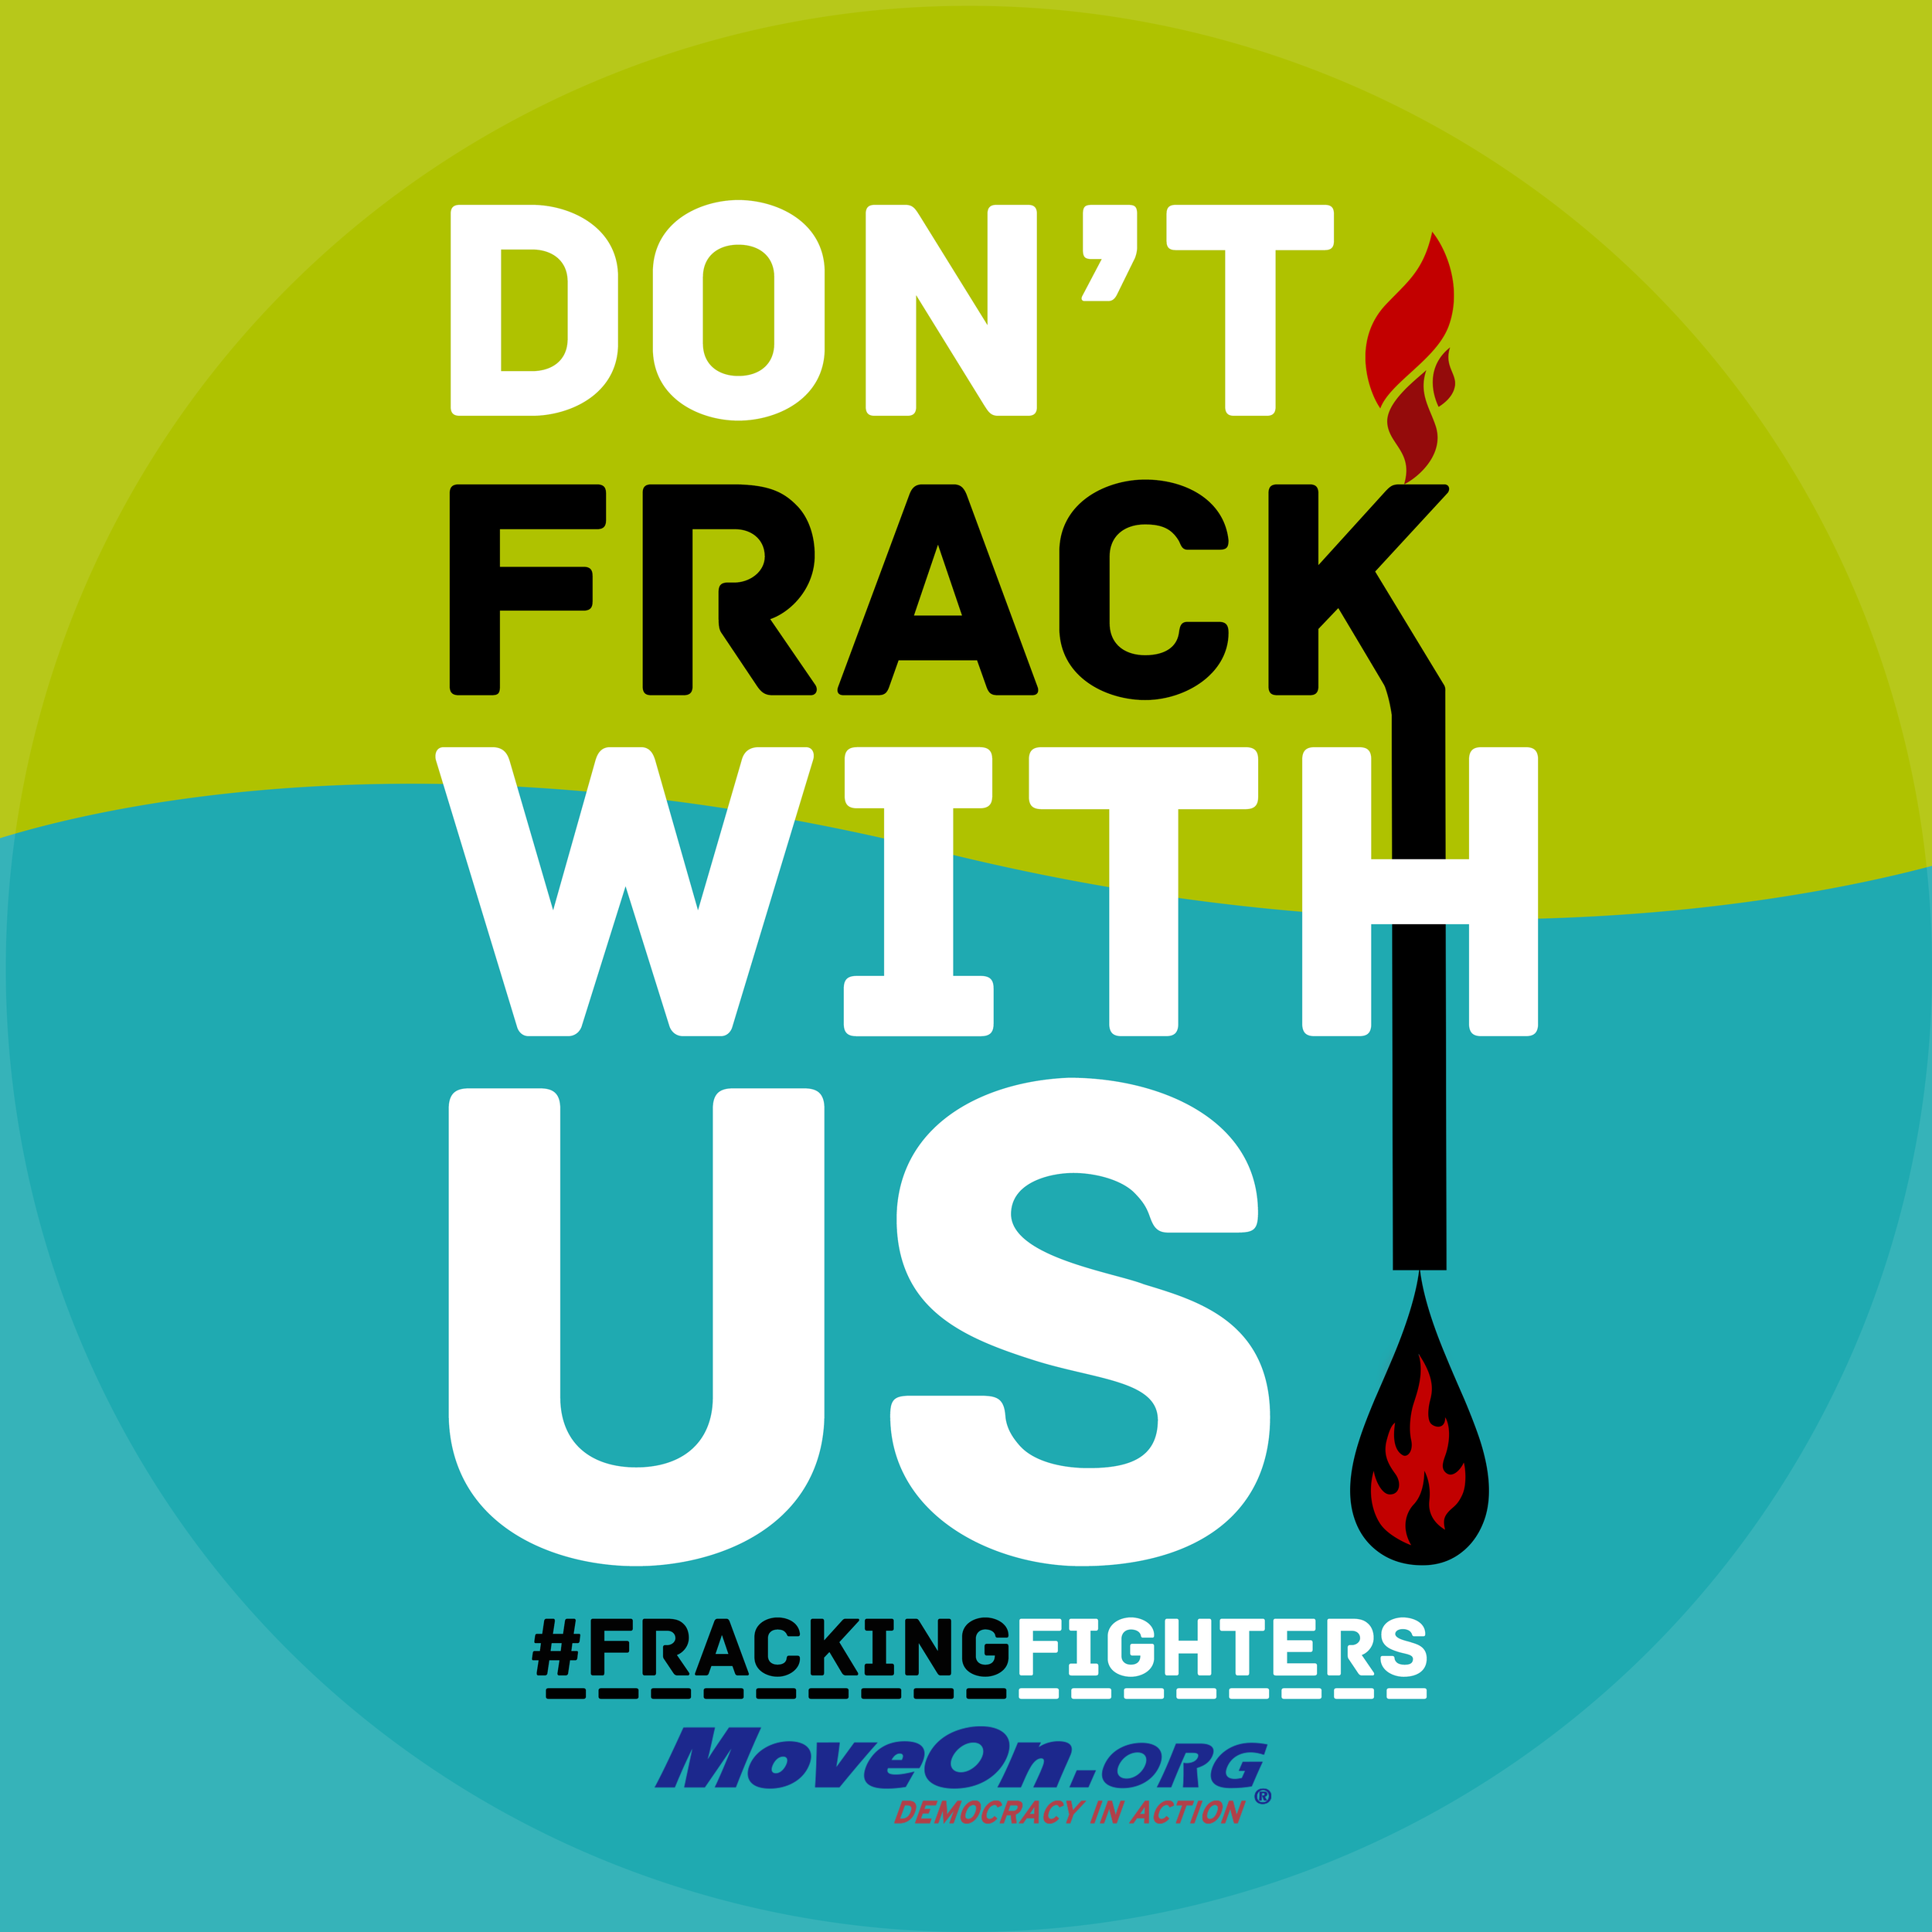 20140106_MoveOn_FrackingFightersSign_BUTTON_V3.1.png